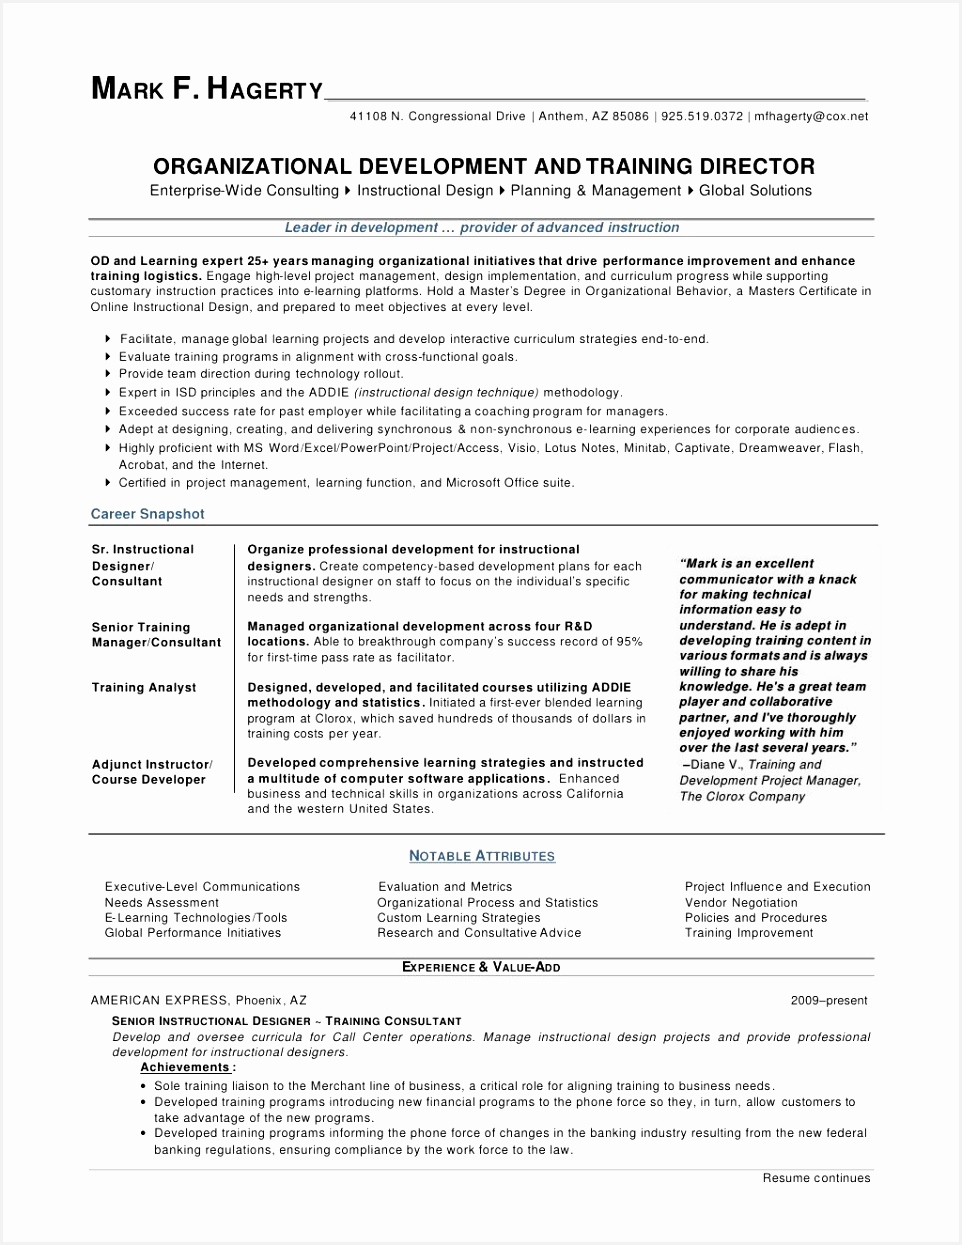 Example Job Resume New Awesome Resume Sample Applying Job Beautiful Mark F Hagerty Od 1245962tgiji